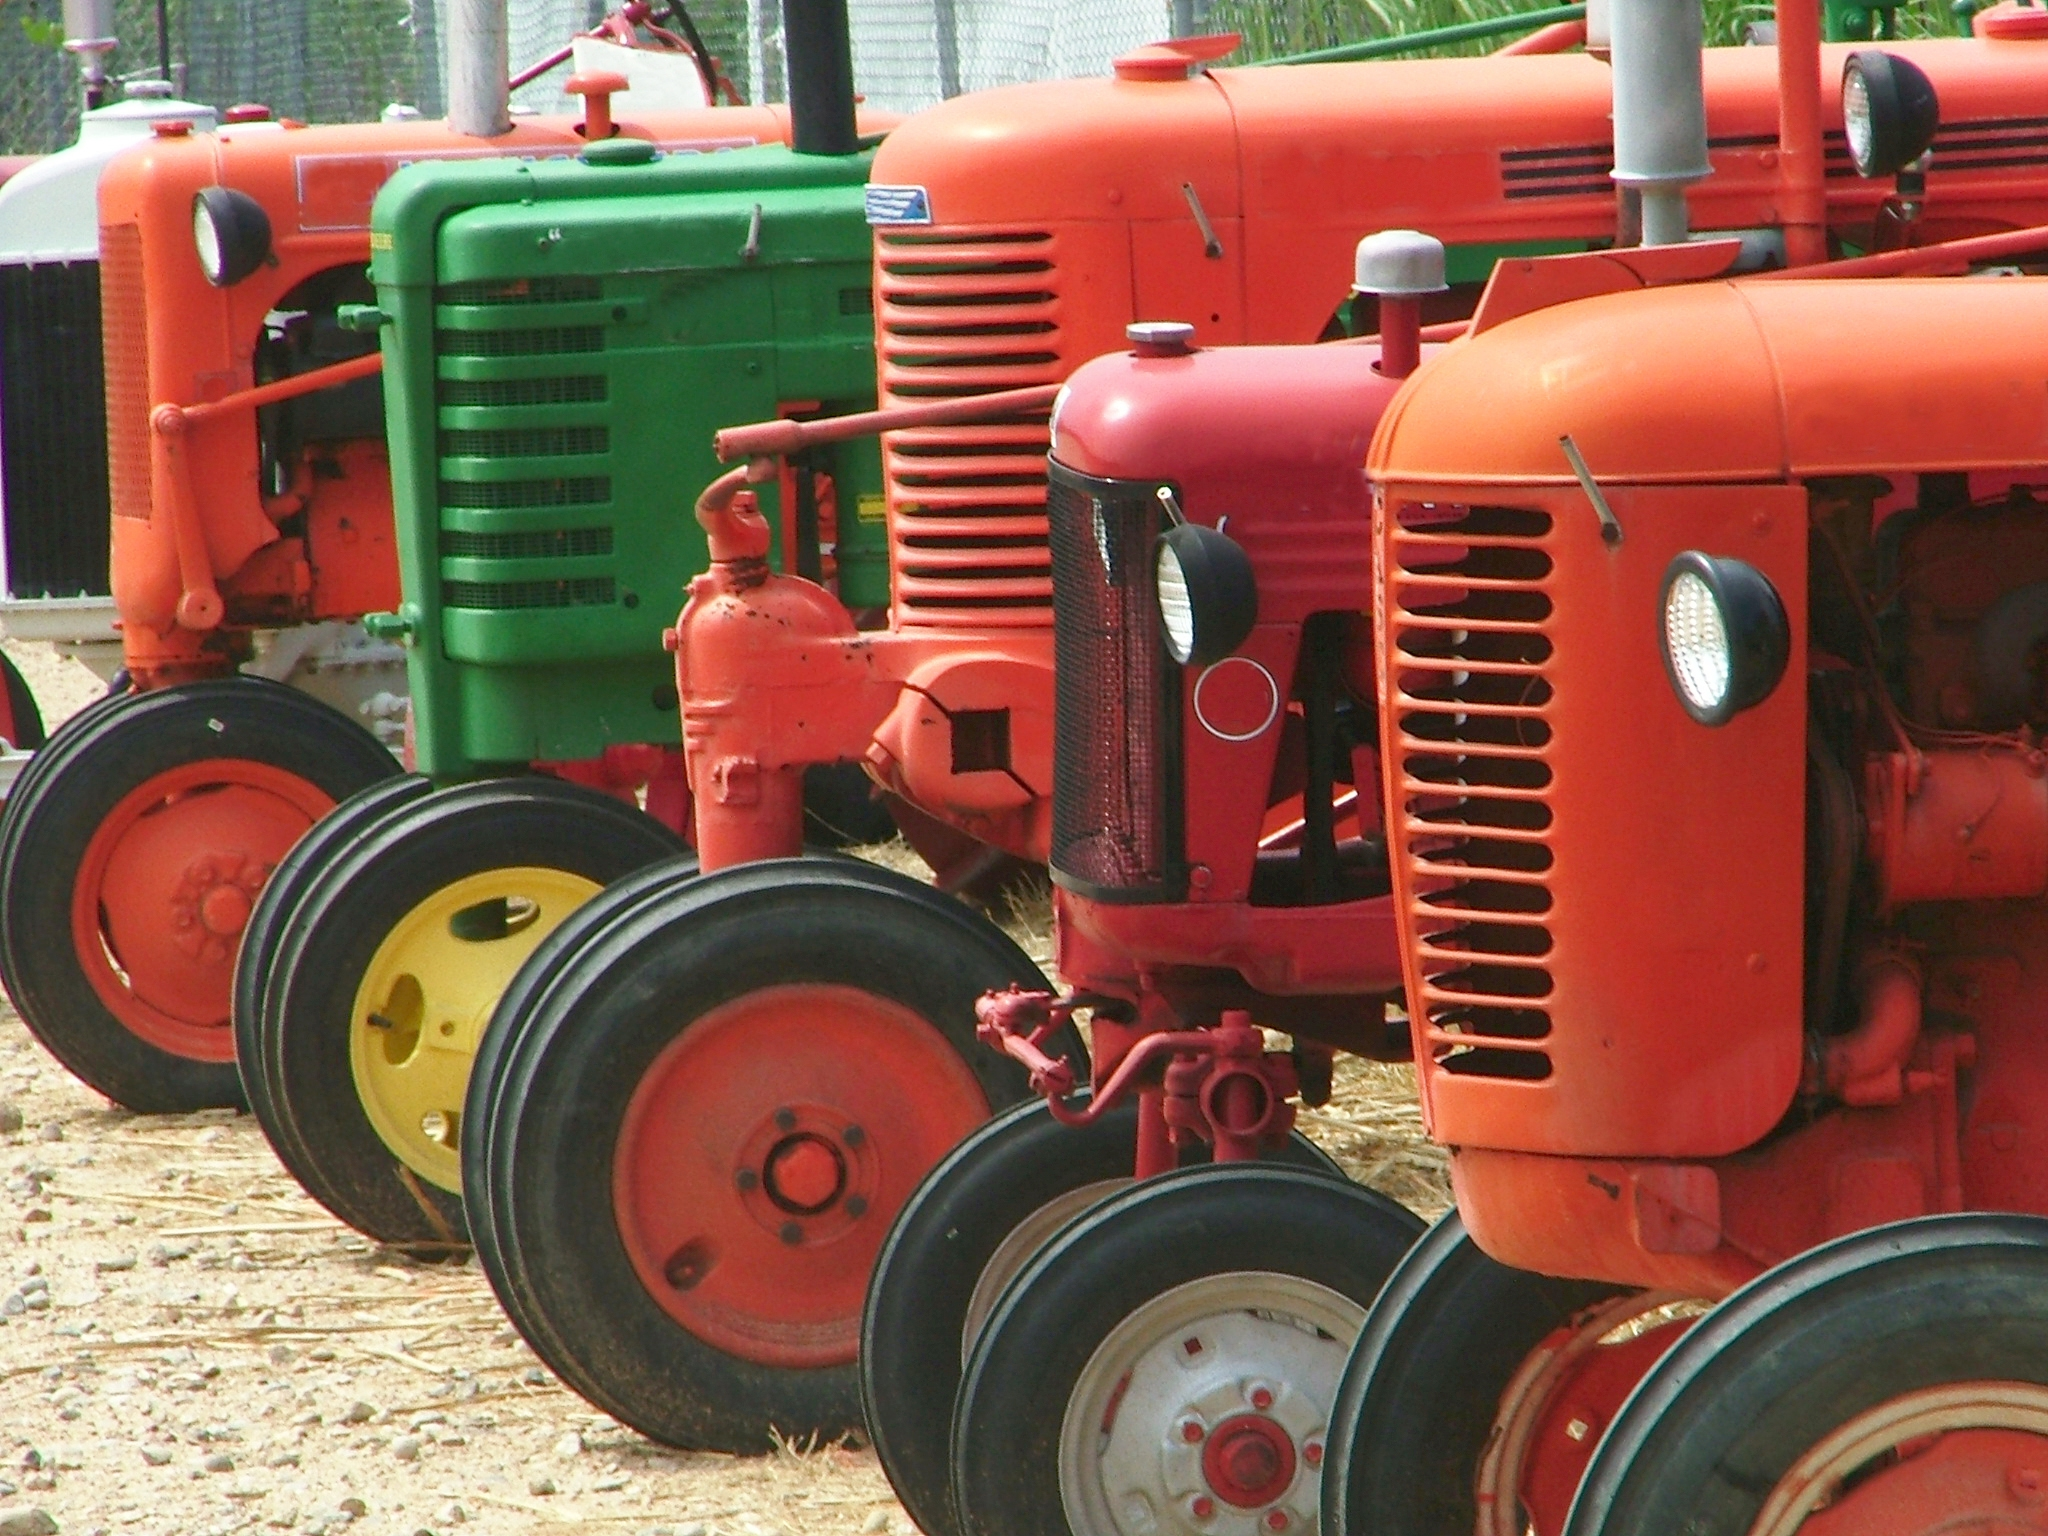 Five tractors of various colors line up to wait their turn to participate in the highly anticipated tractor pull competition.